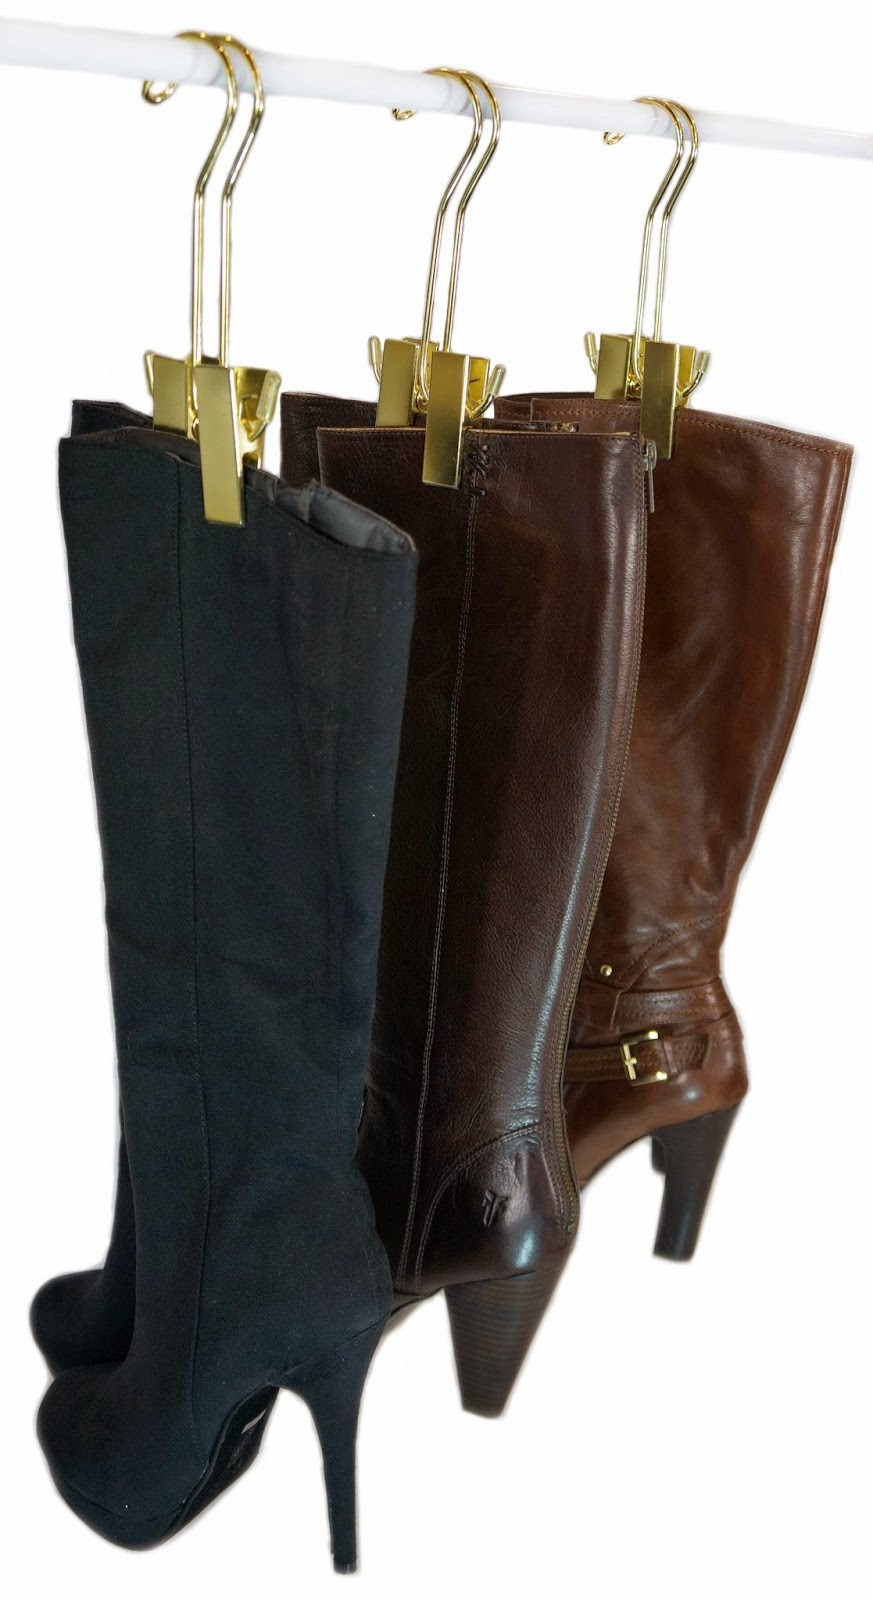 The Boot Hanger